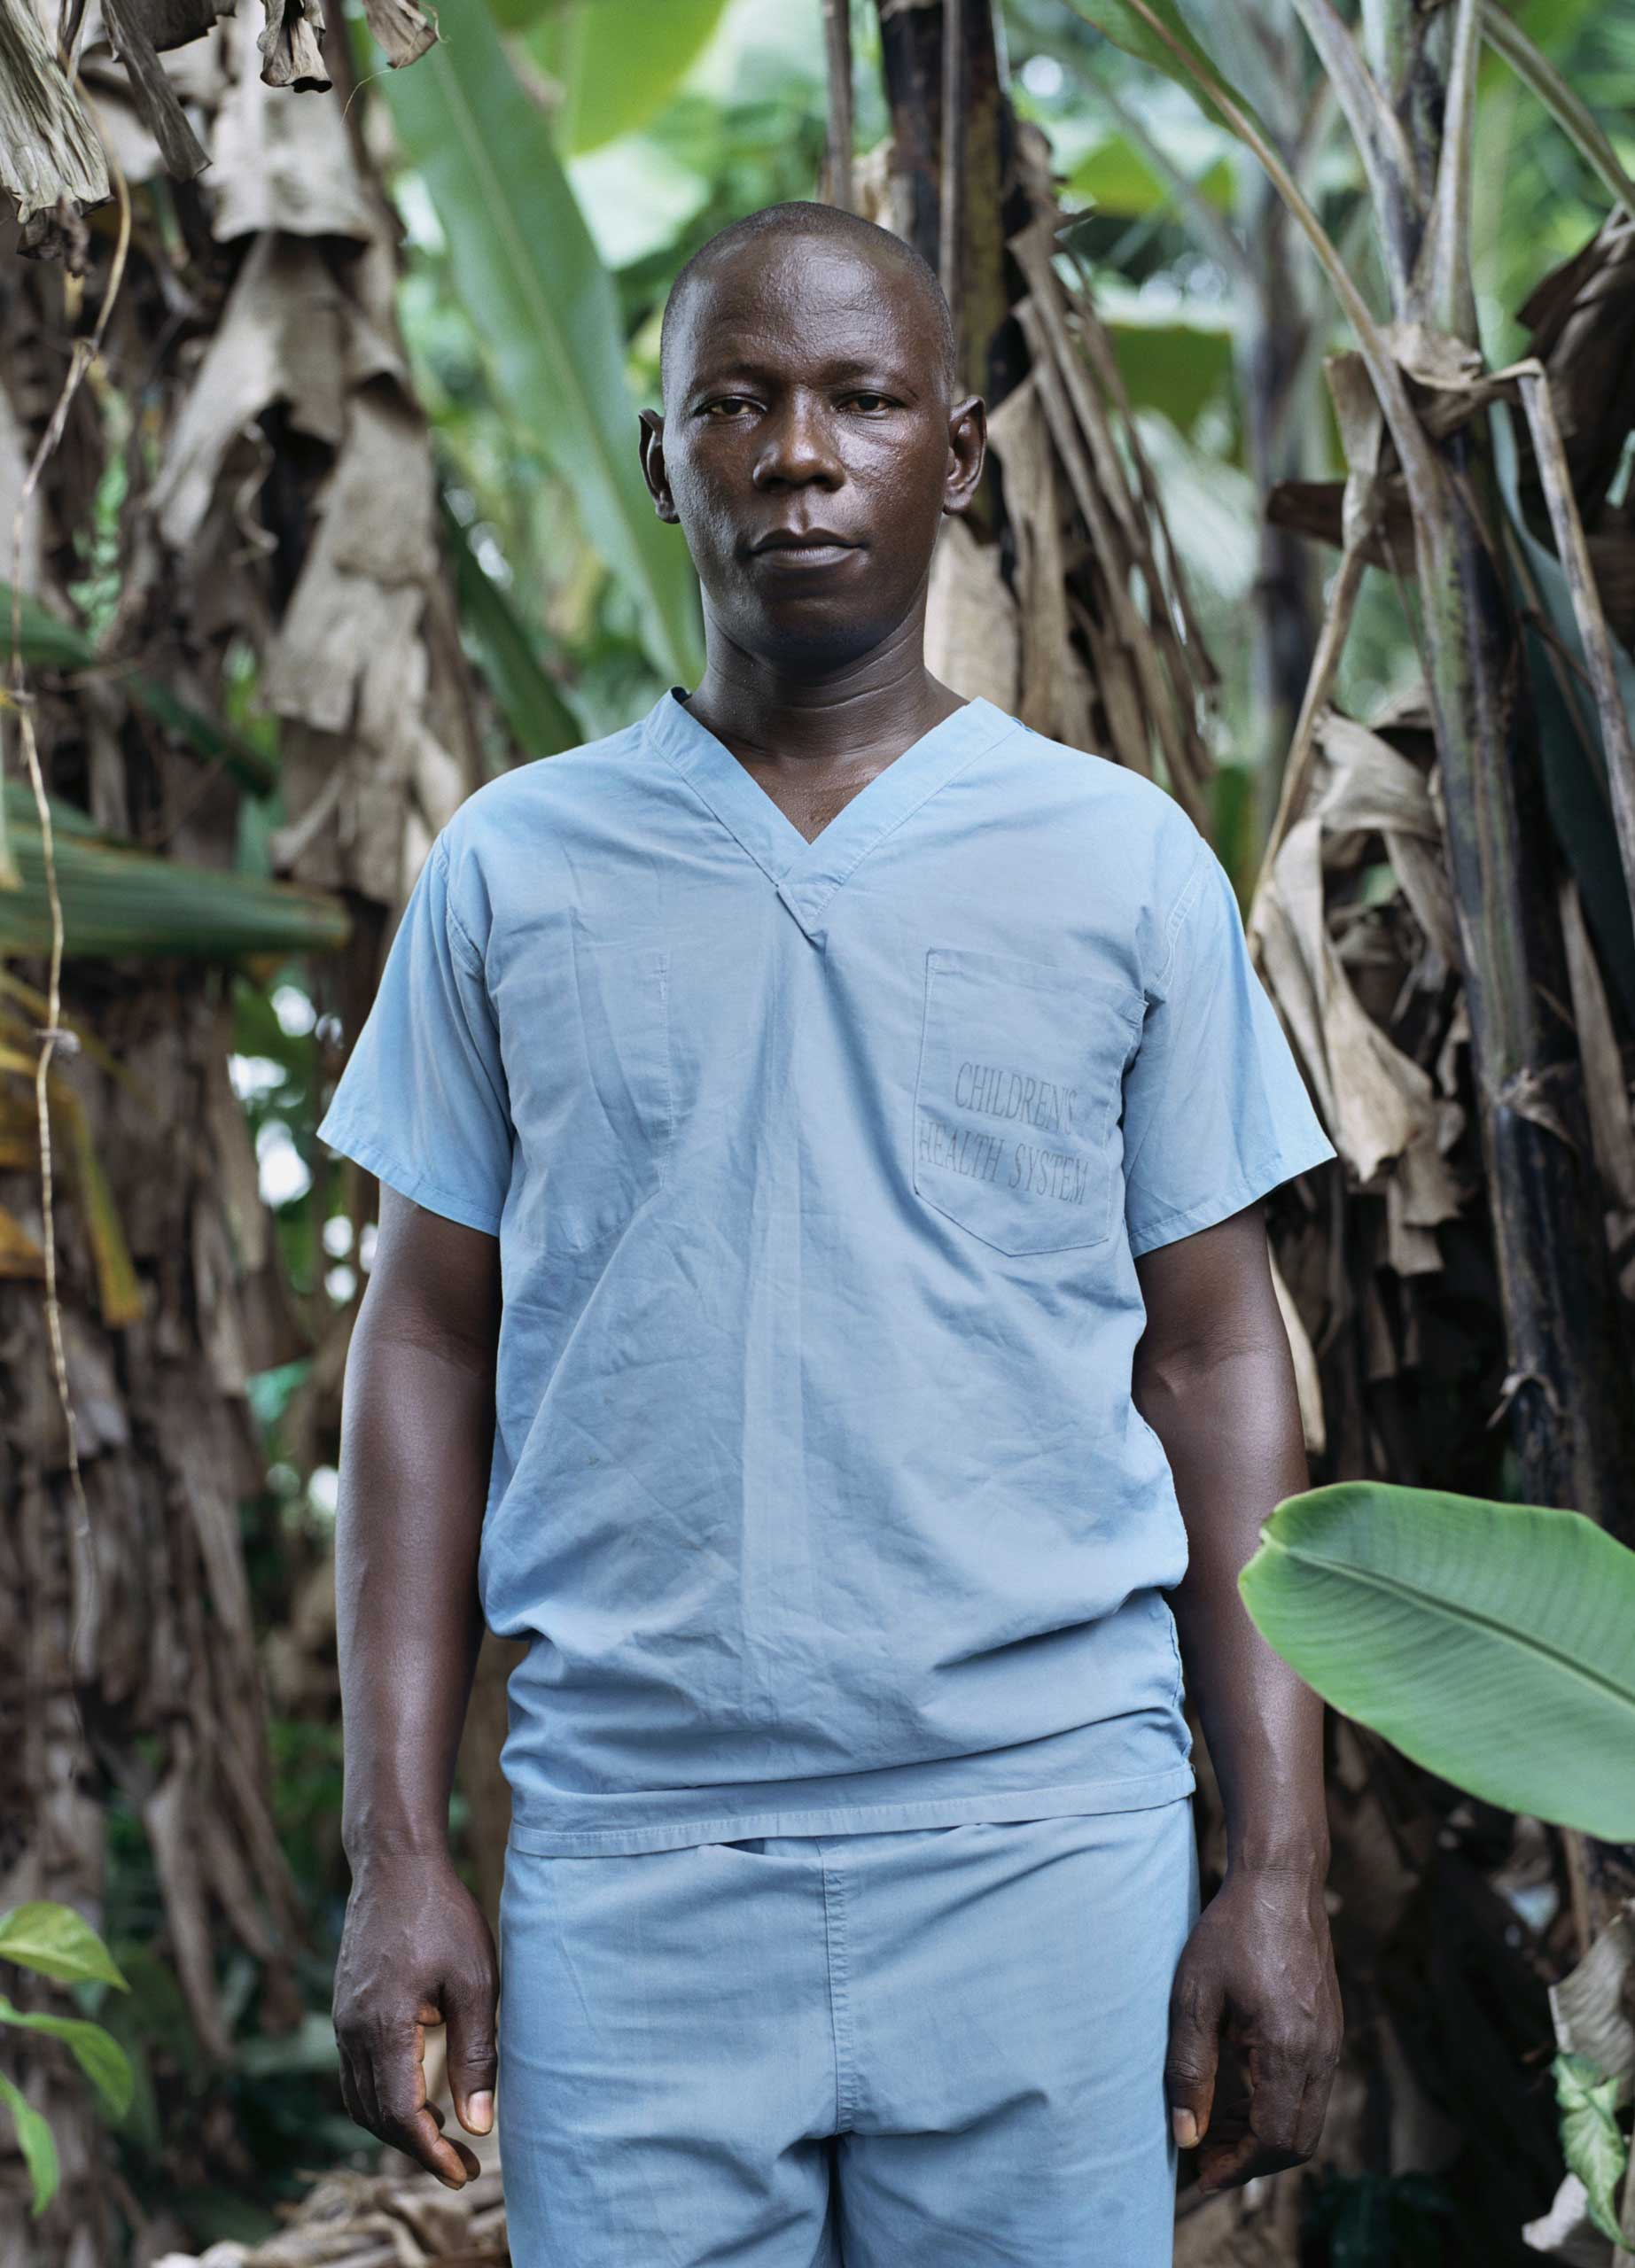 Foday Galla, 37, Ambulance Supervisor, photographed in Signboard community, in Monrovia, Liberia. Nov. 26, 2014